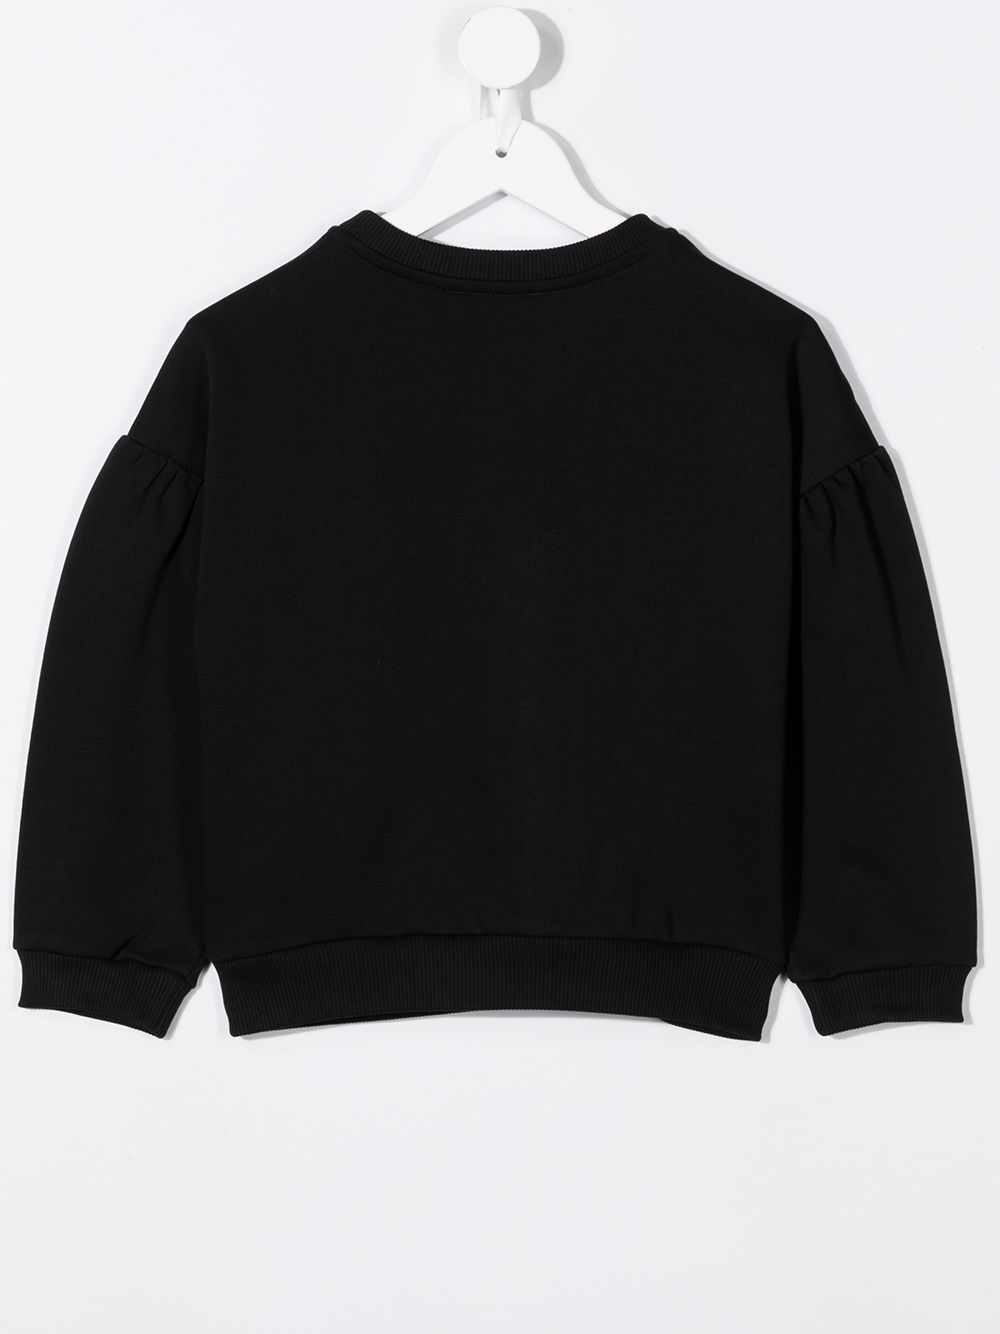 GIVENCHY KIDS Cracked Logo Sweatshirt Black/Gold